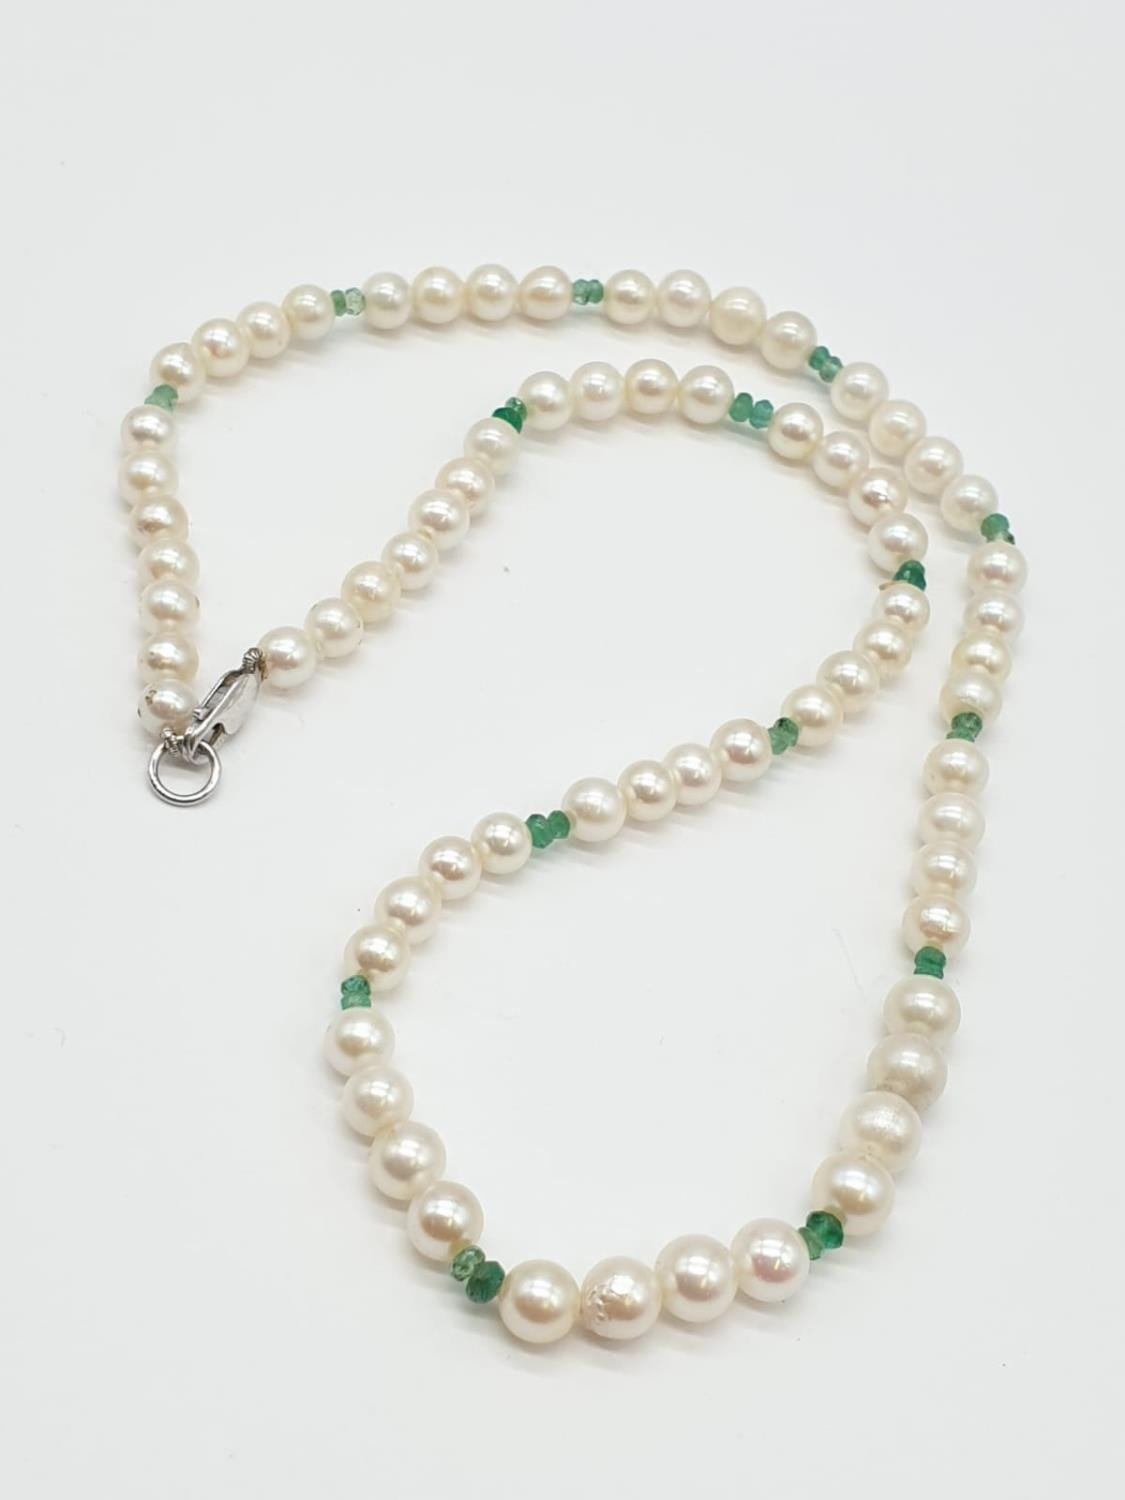 Cultured Pearl and Emerald NECKLACE with 9ct Gold Clasp. 16.3g 40cm - Image 2 of 5